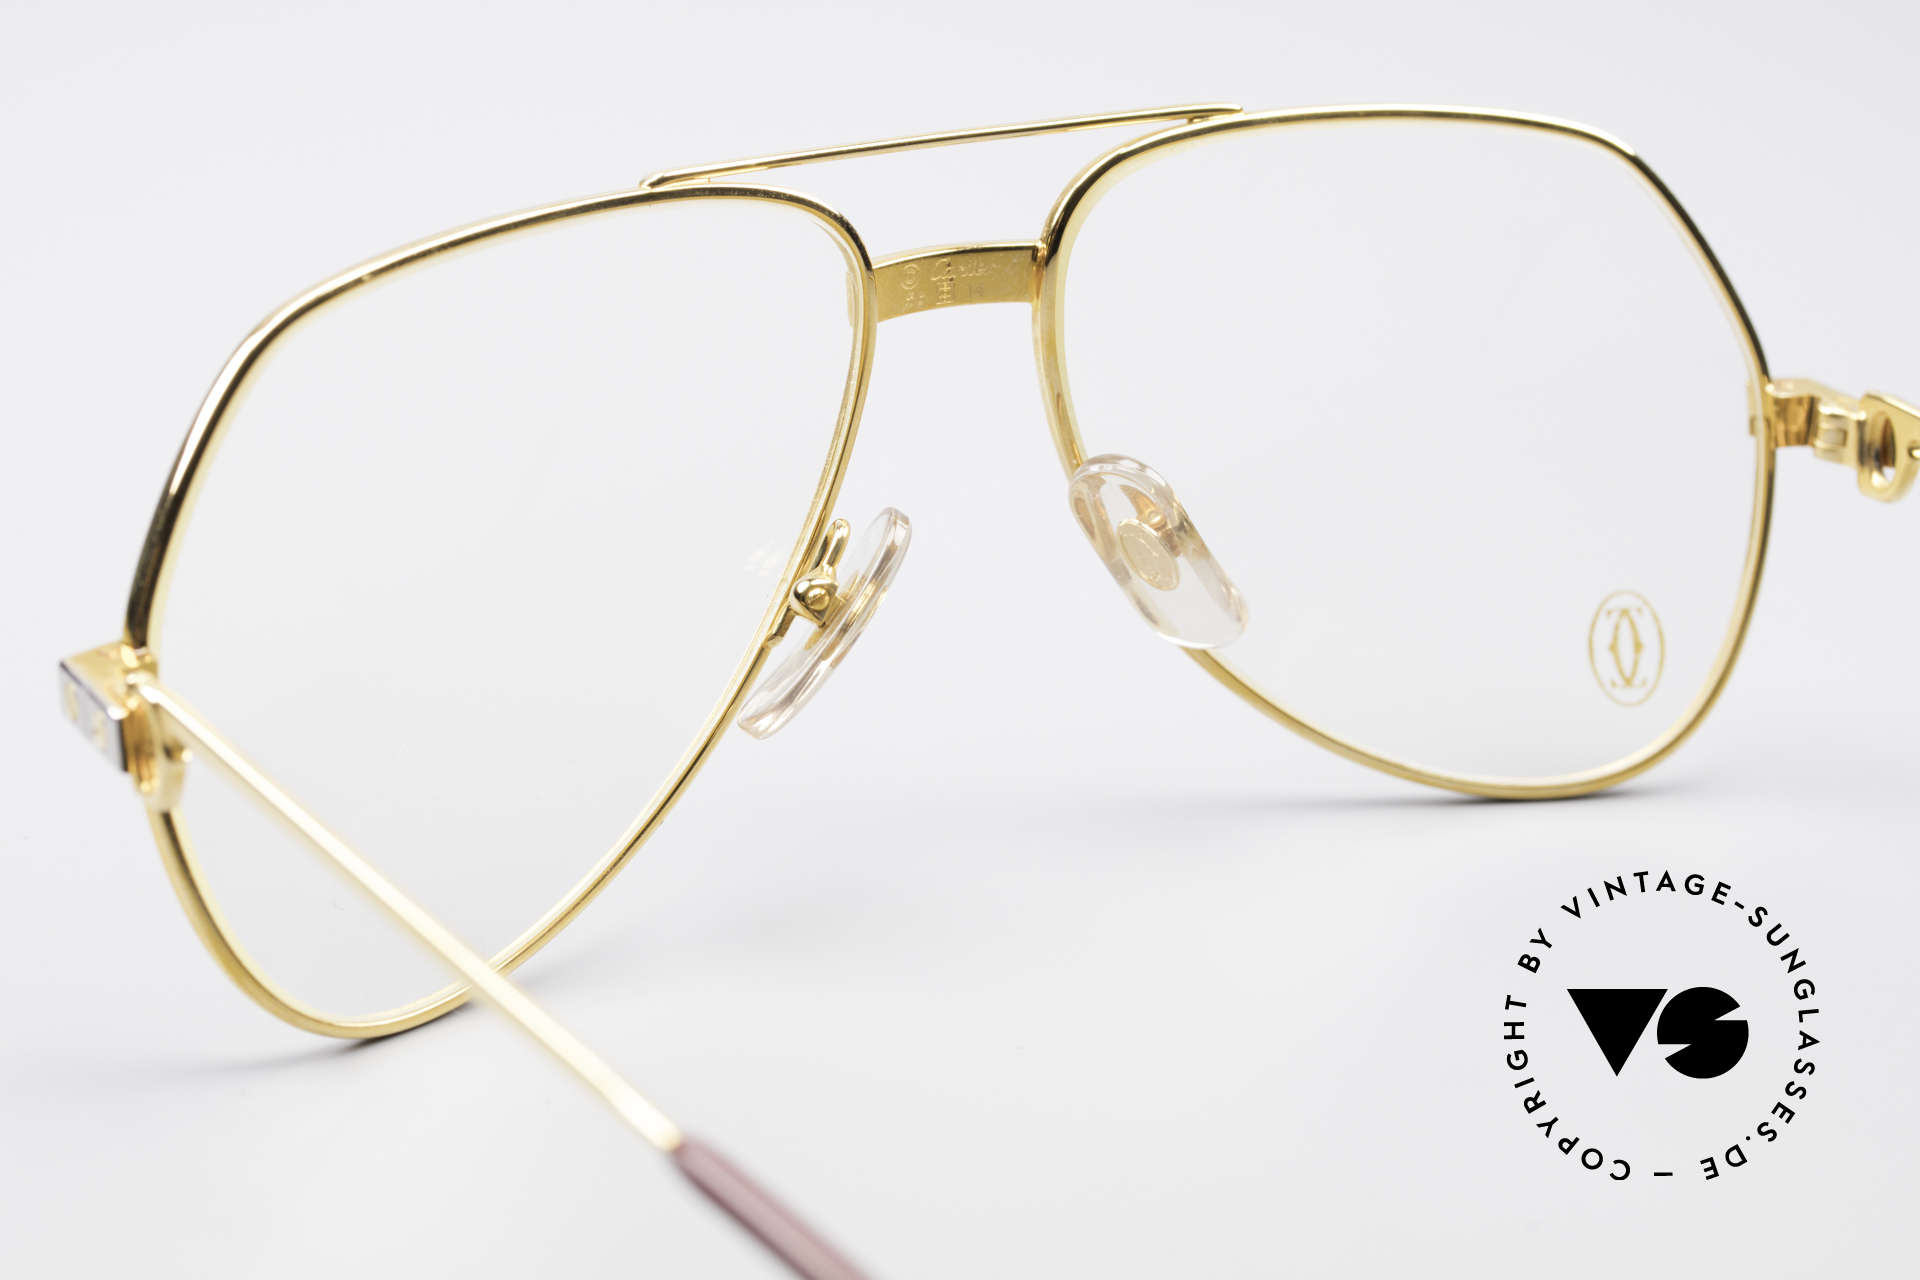 Cartier Vendome Santos - S James Bond Eyeglasses 1980's, luxury frame (22ct gold-plated) with full orig. packing!, Made for Men and Women